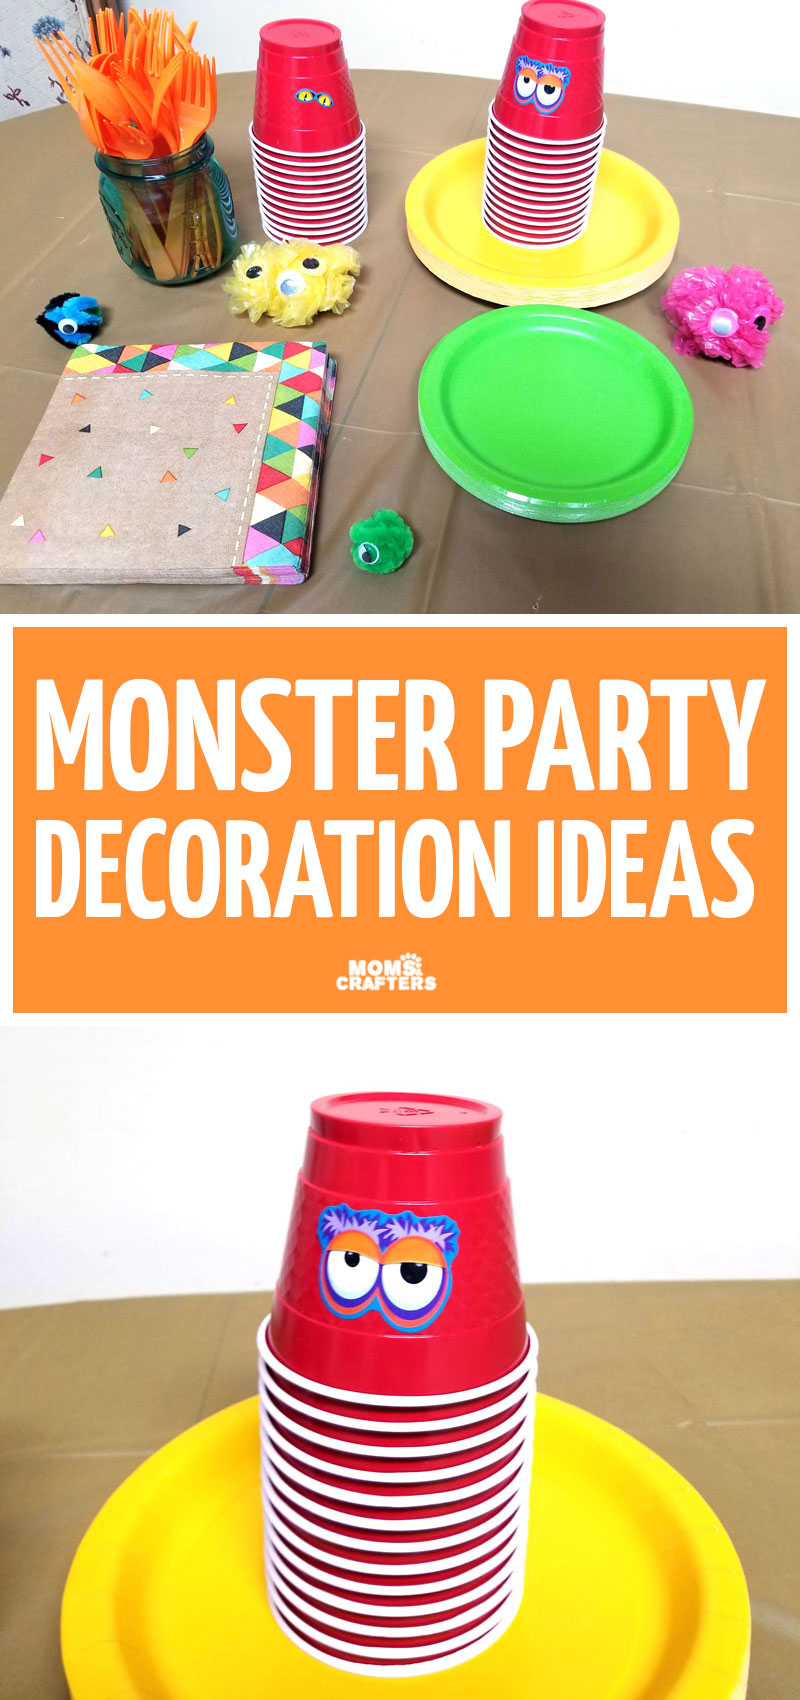 Click to make some super cool and easy DIY monster party decorations, just like we did by my boy's third birthday party! These cool decorating ideas are great for a toddler's birthday.